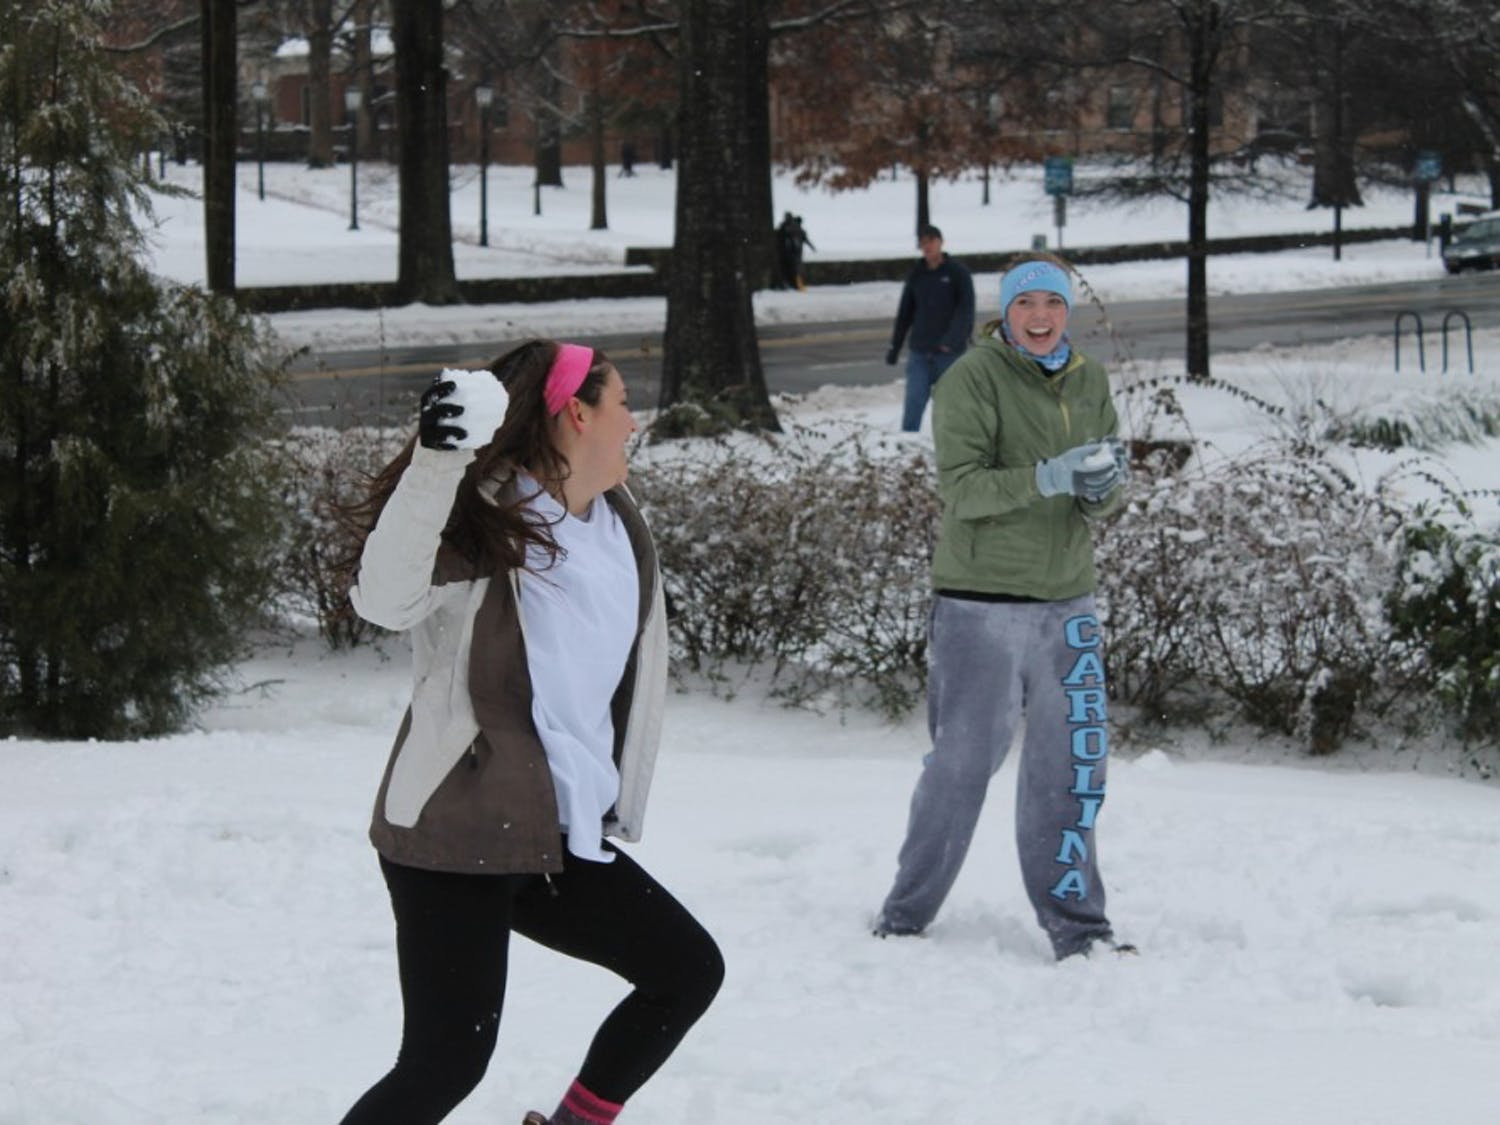 Snow cancelled classes again at UNC on Thursday. Snow cancelled classes again at UNC on Thursday. After sleet and freezing rain fell all Wednesday night, more snow fell on Thursday afternoon.